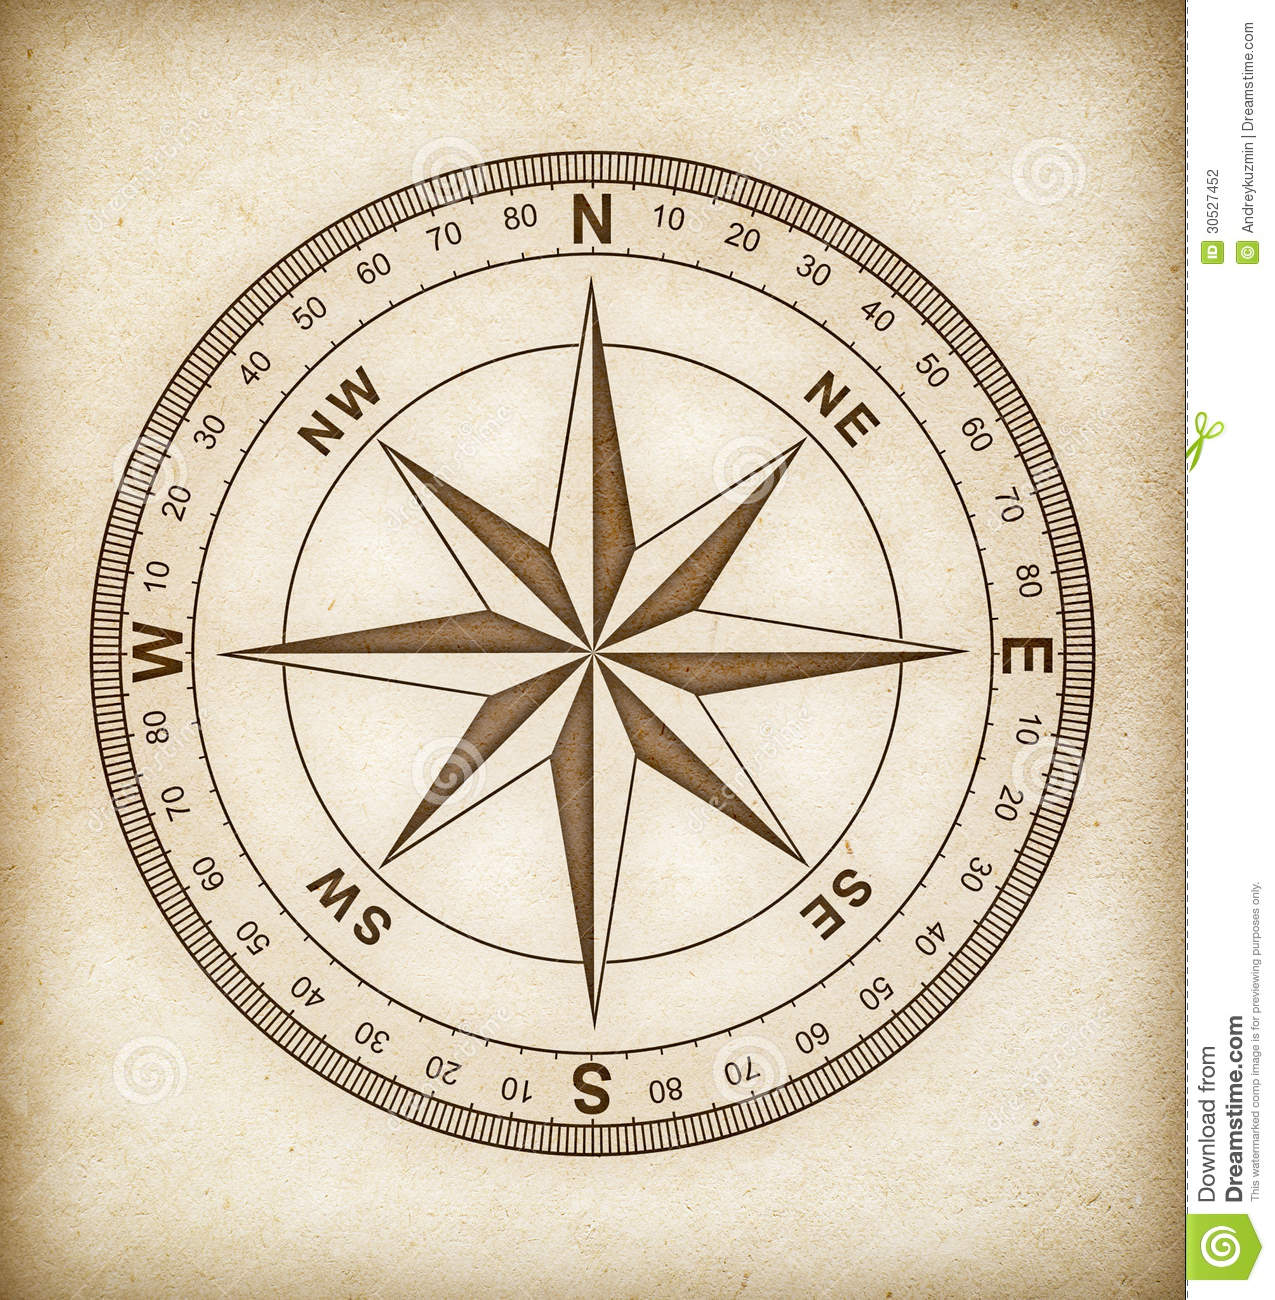 Compass Rose On Old Paper Stock Photography - Image: 30527452